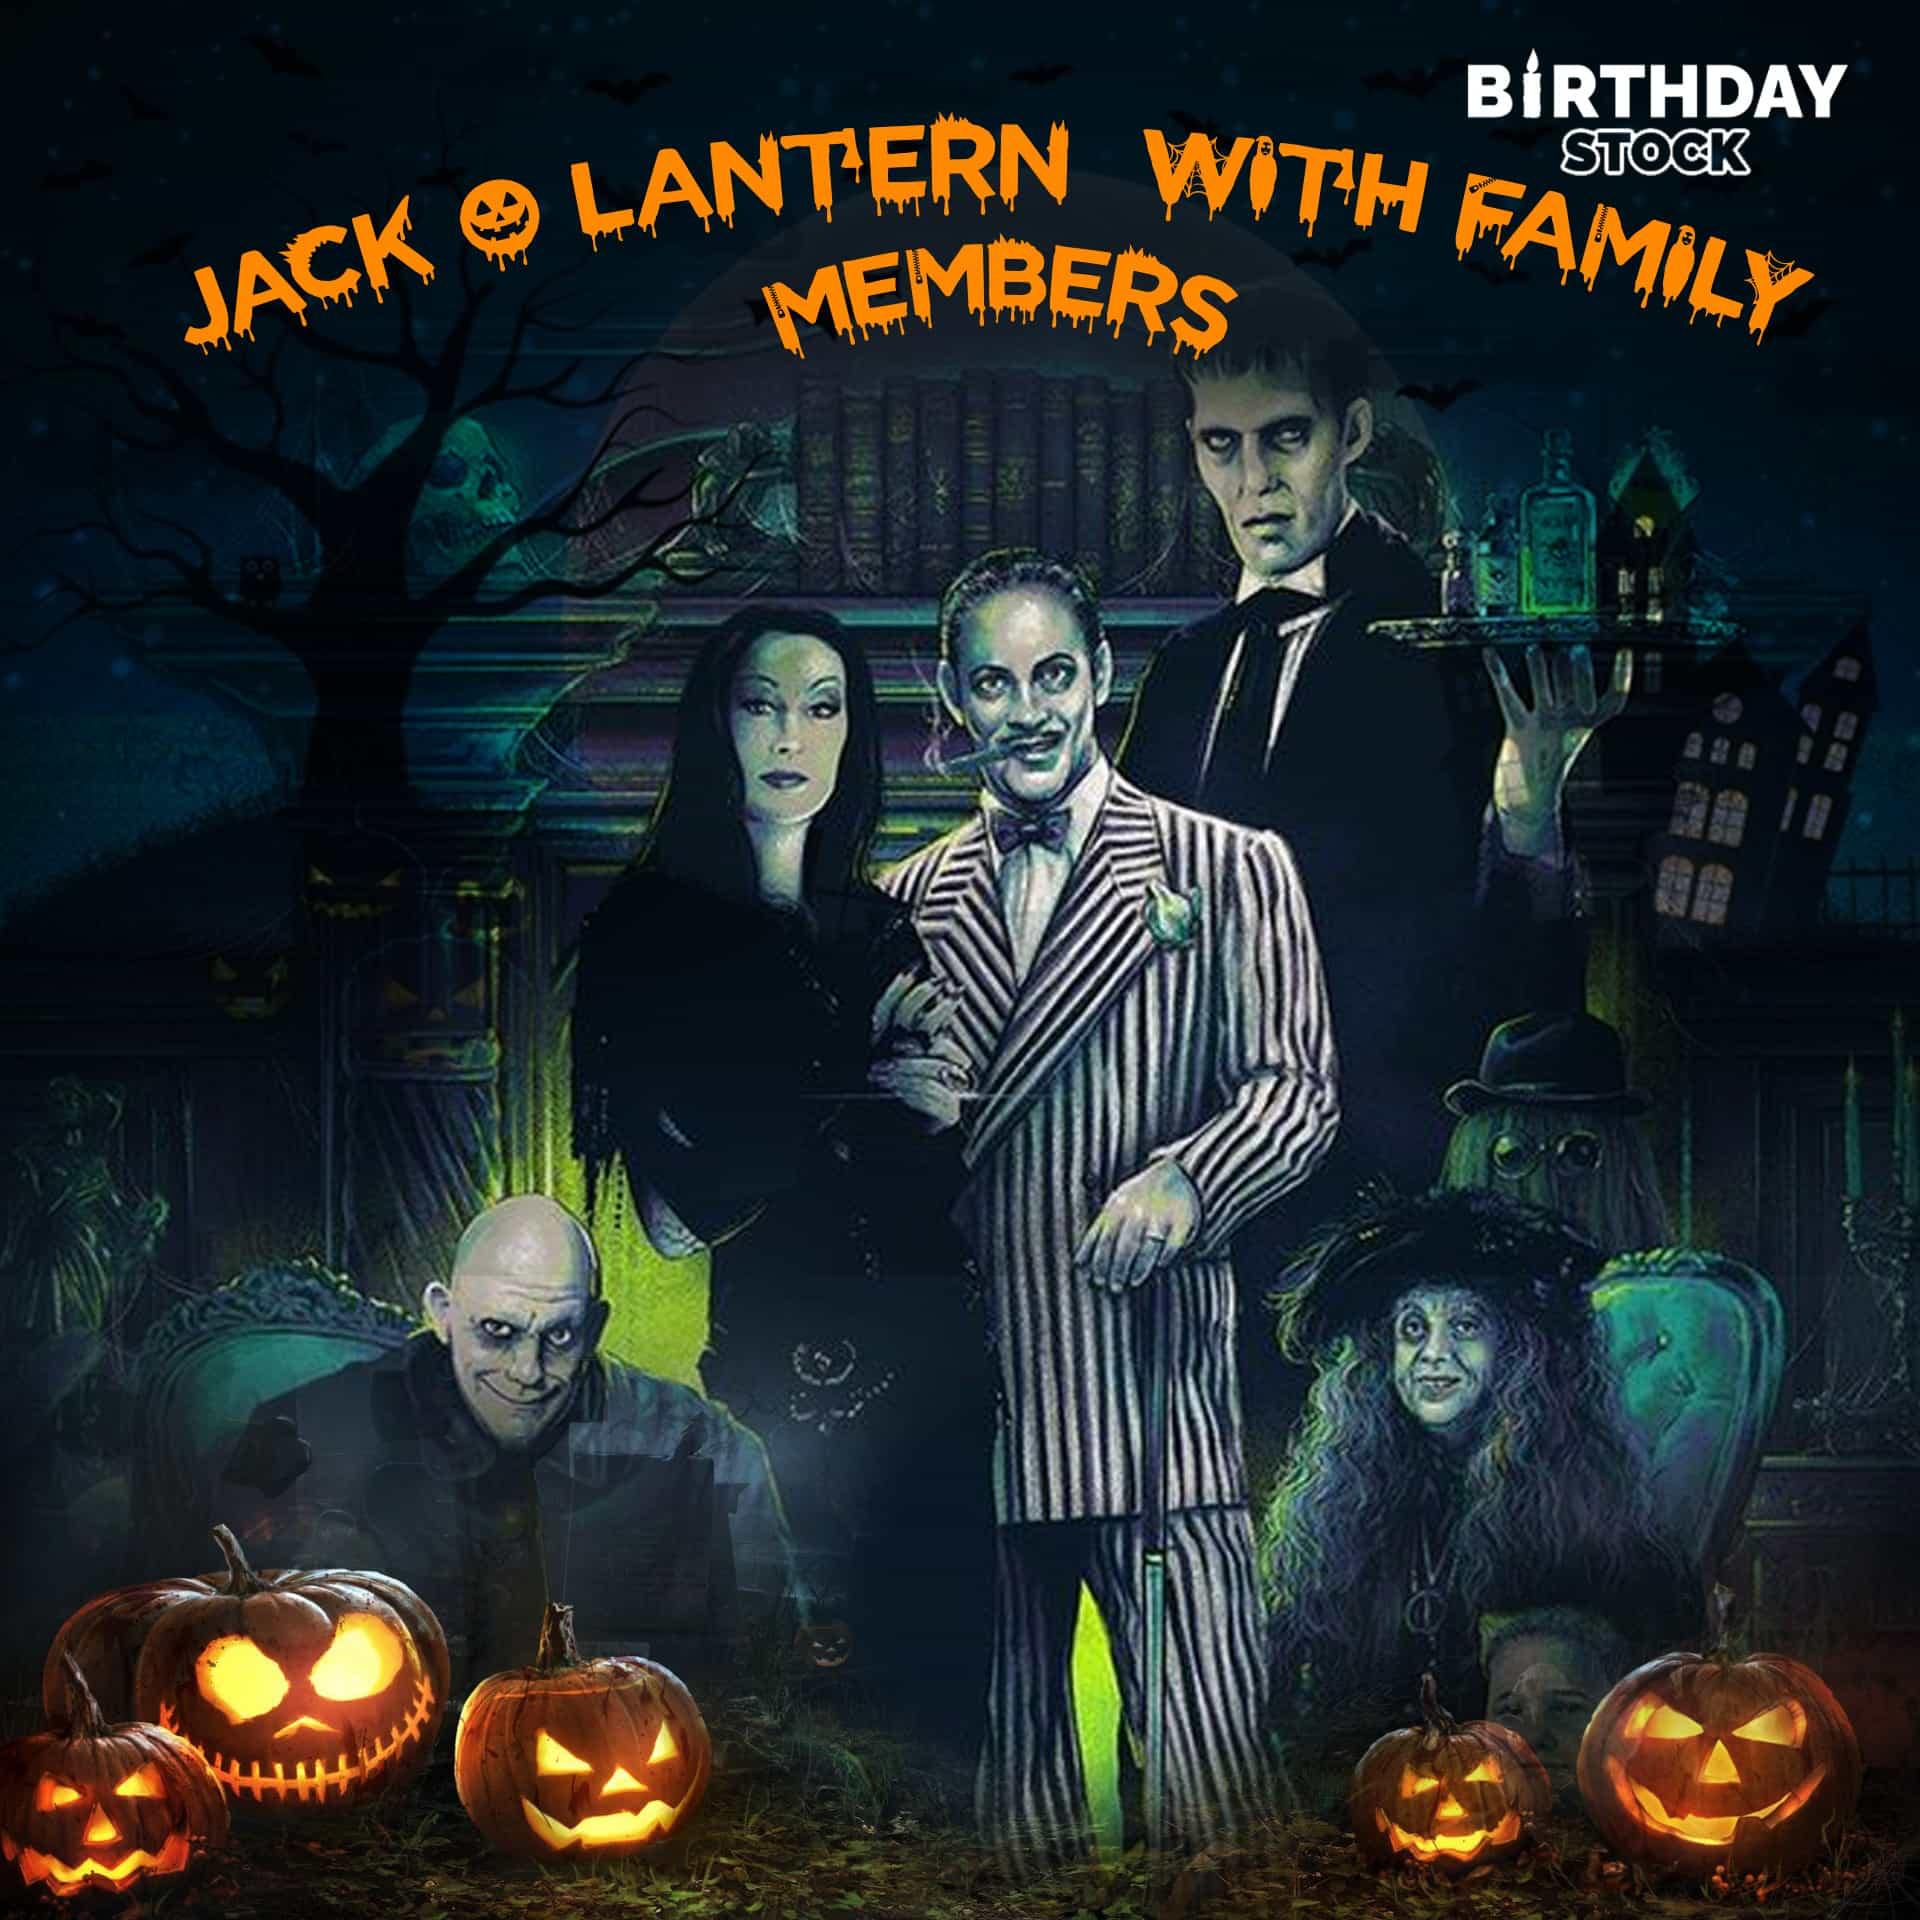 Jack o Lantern with Family Members